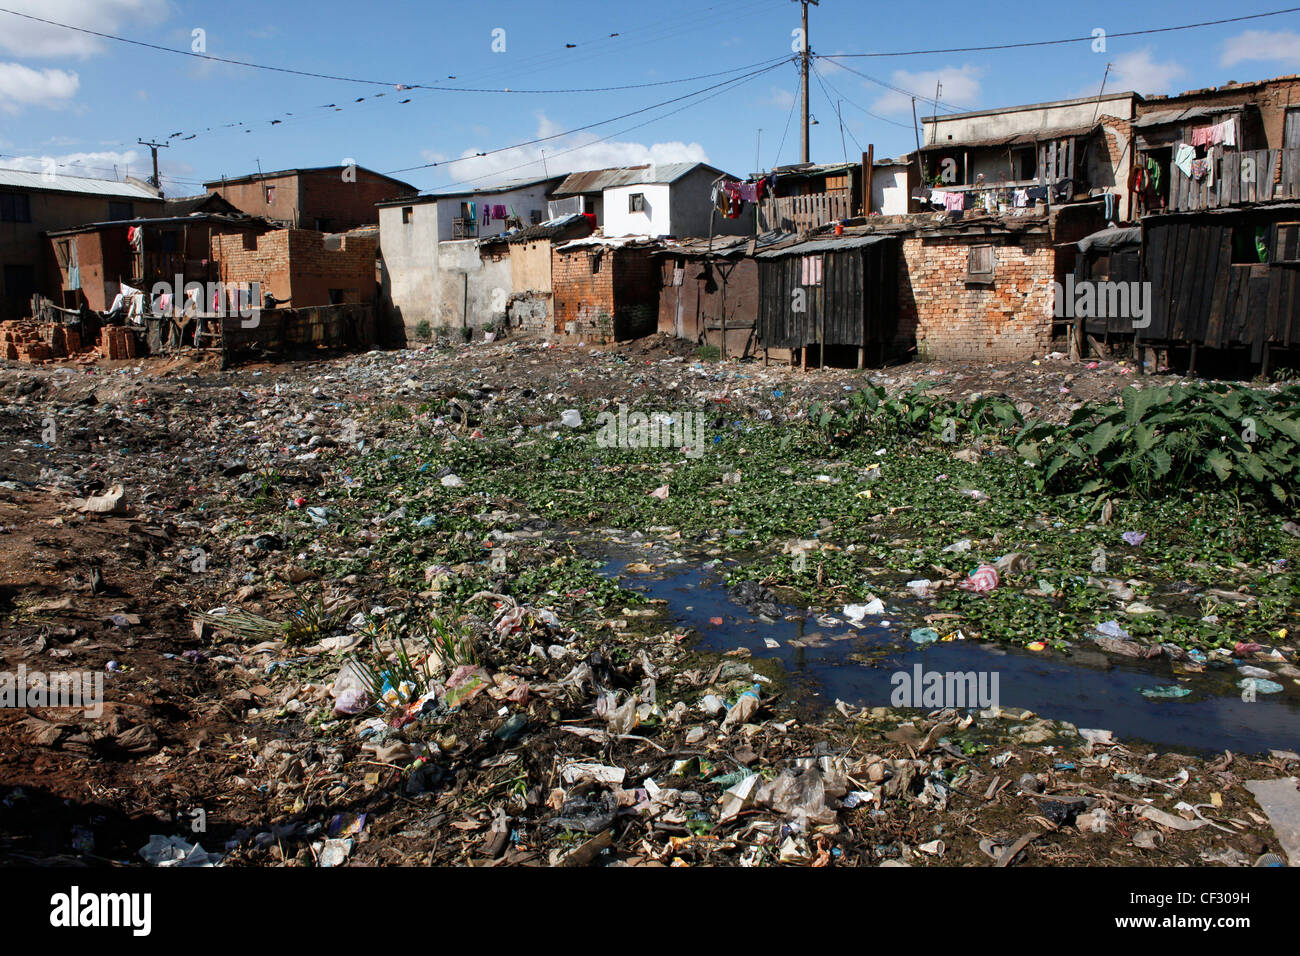 A residential neighbourhood in Madagascar's capital Antananarivo. - Stock Image